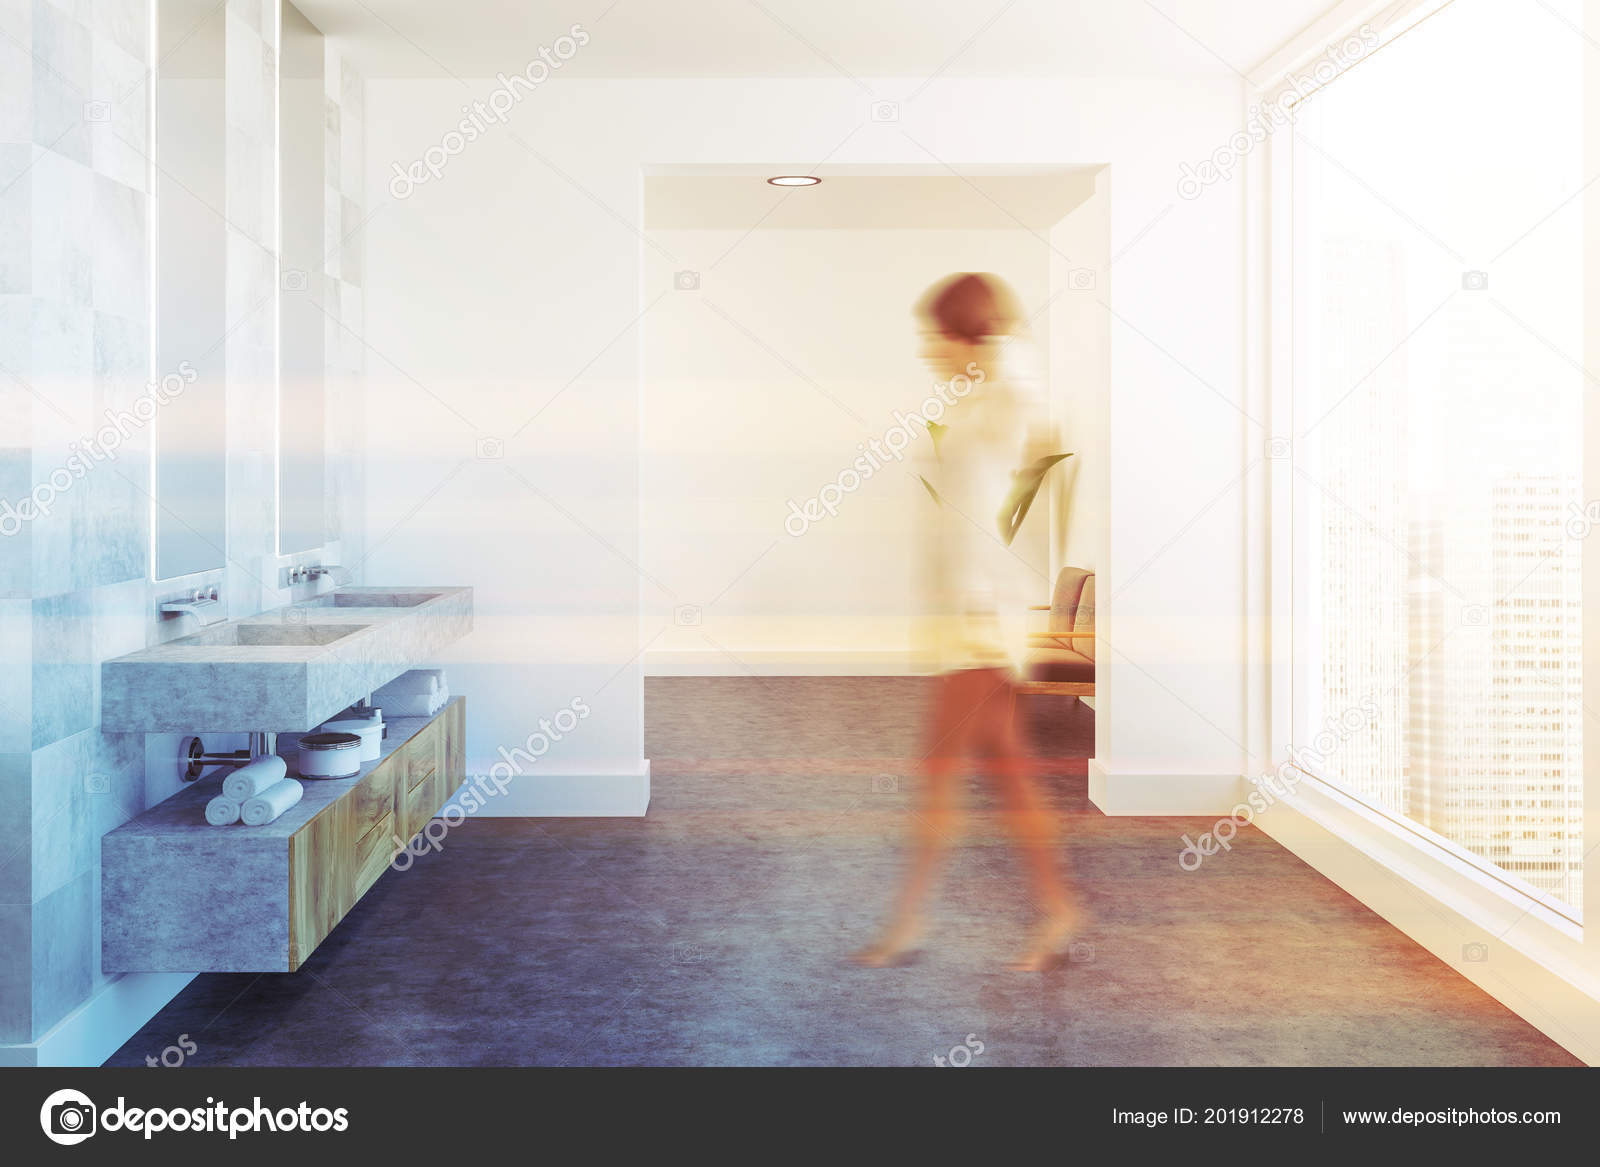 Woman in a hite tile spacious luxury bathroom interior with a concrete floor, a wooden double vessel sink and two narrow mirrors hanging above it.